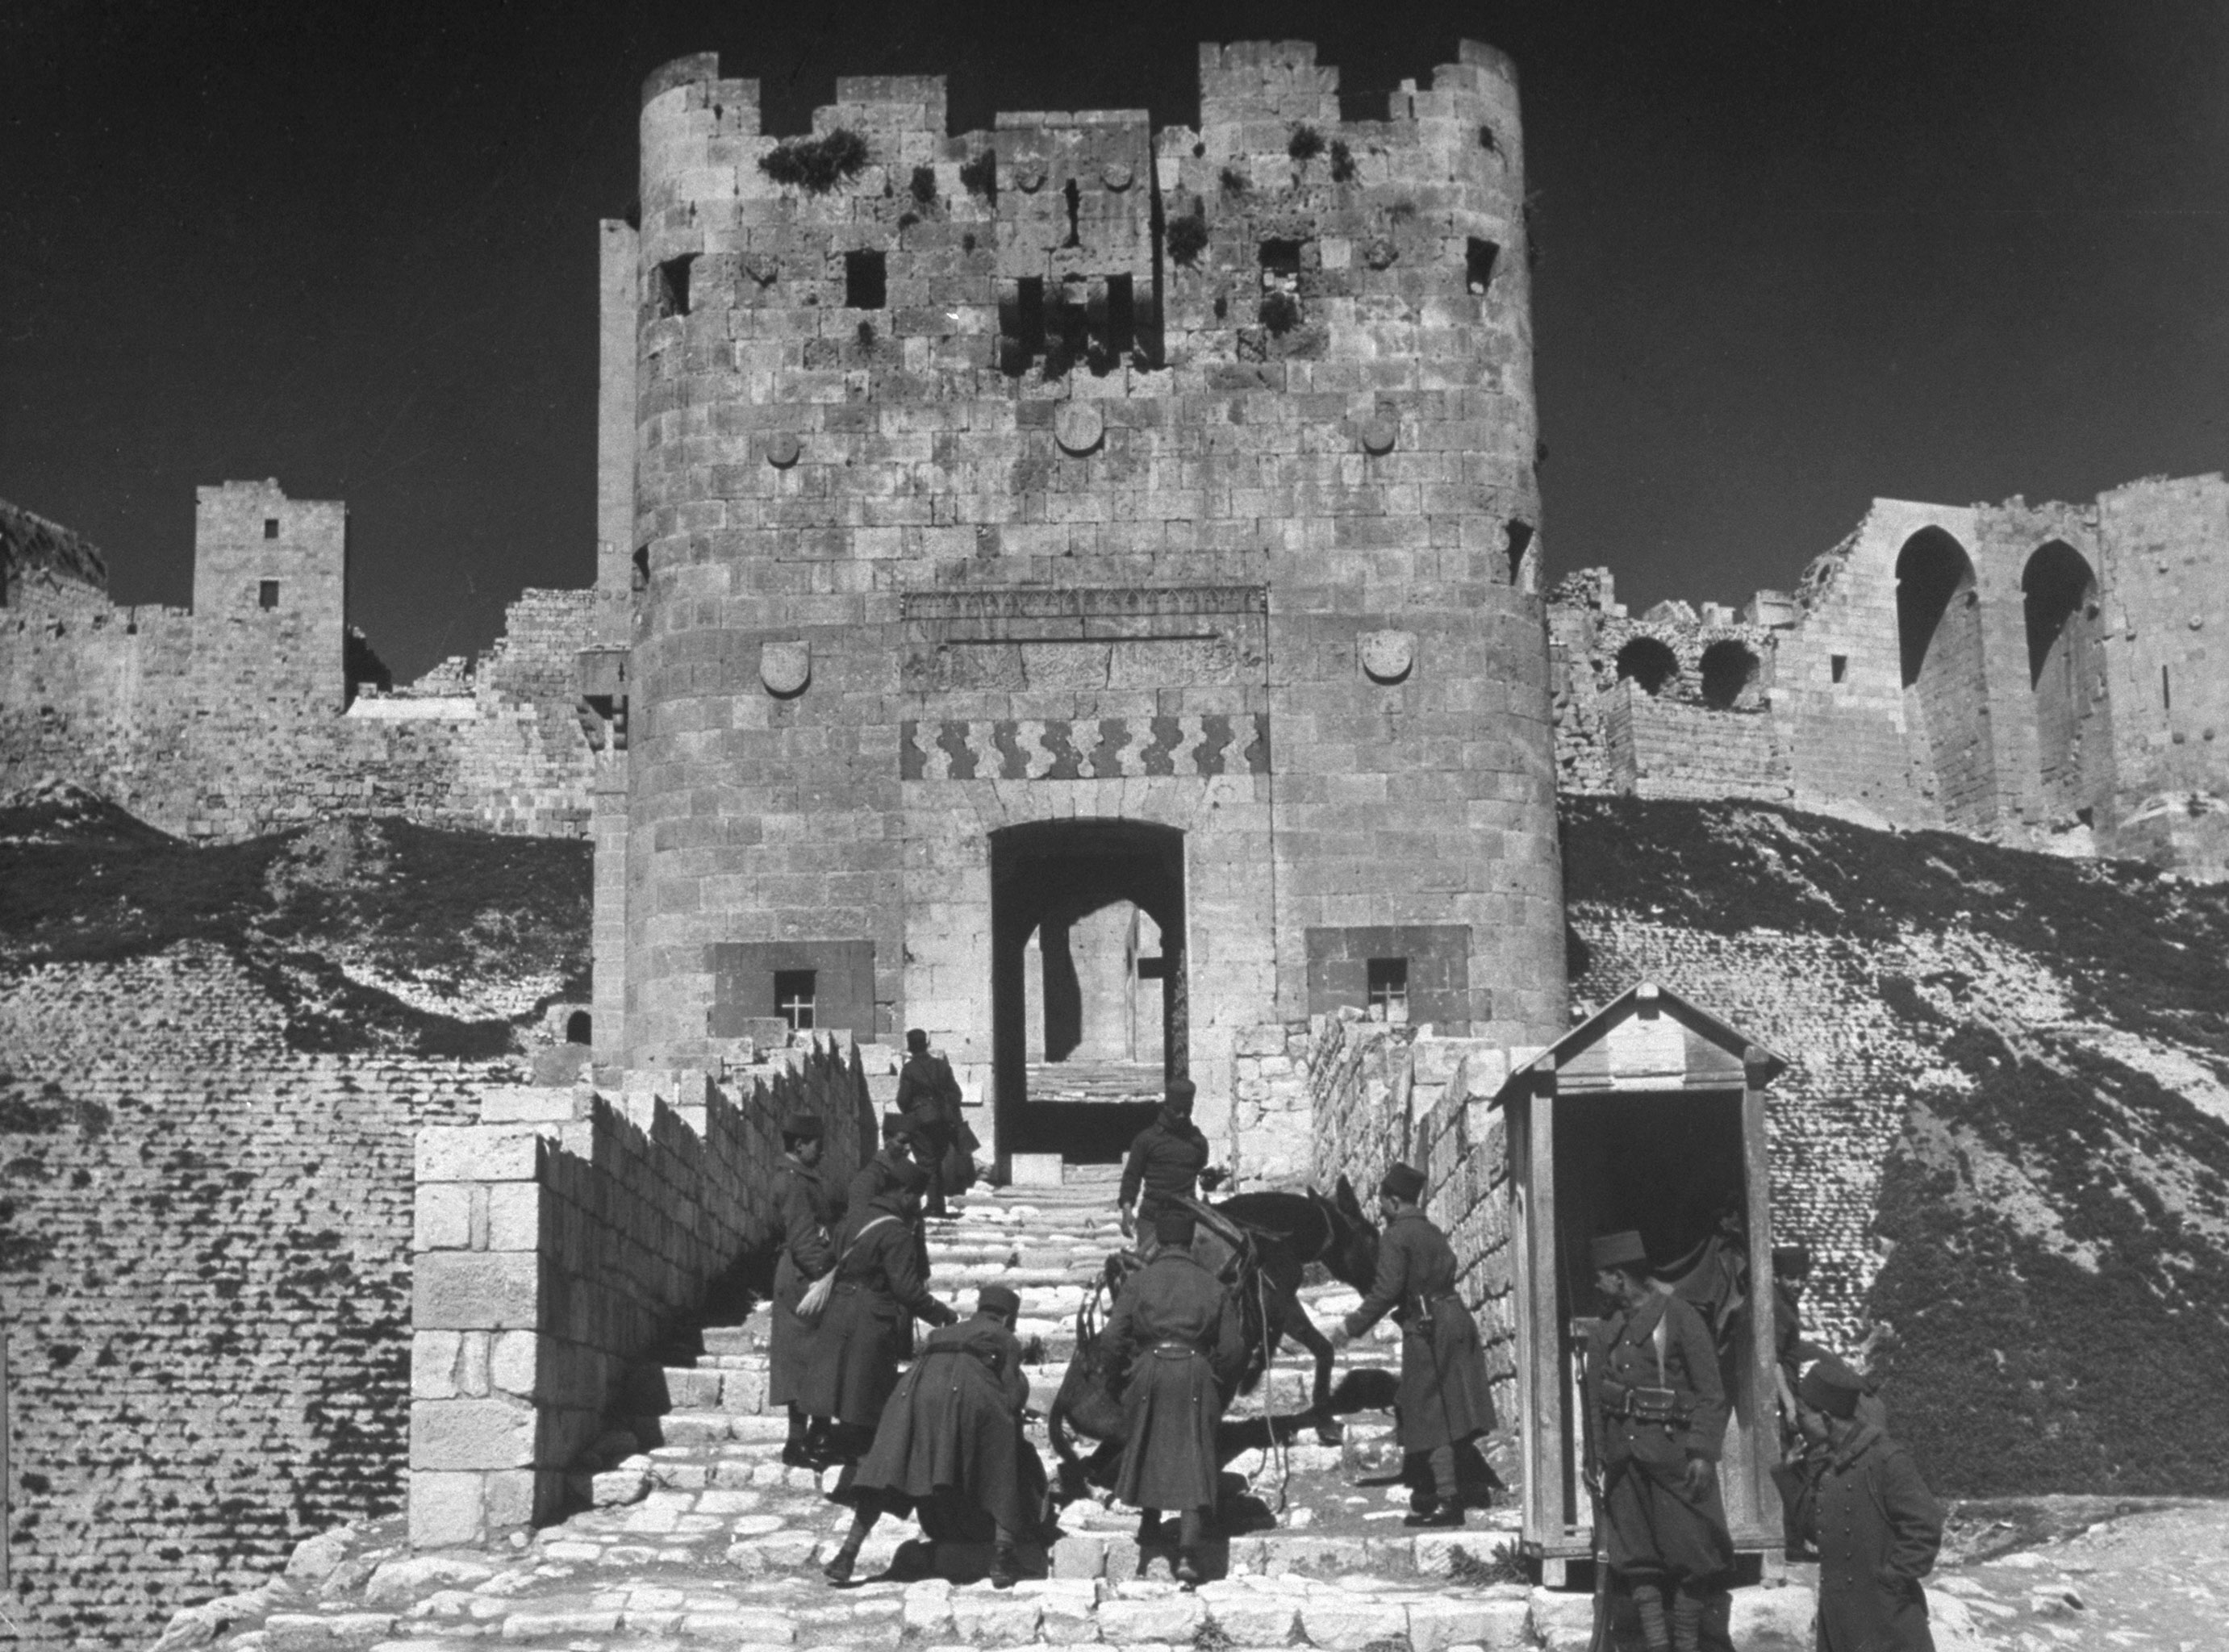 Soldiers urge a mule up the steps of the citadel at Aleppo, Syria, 1940.